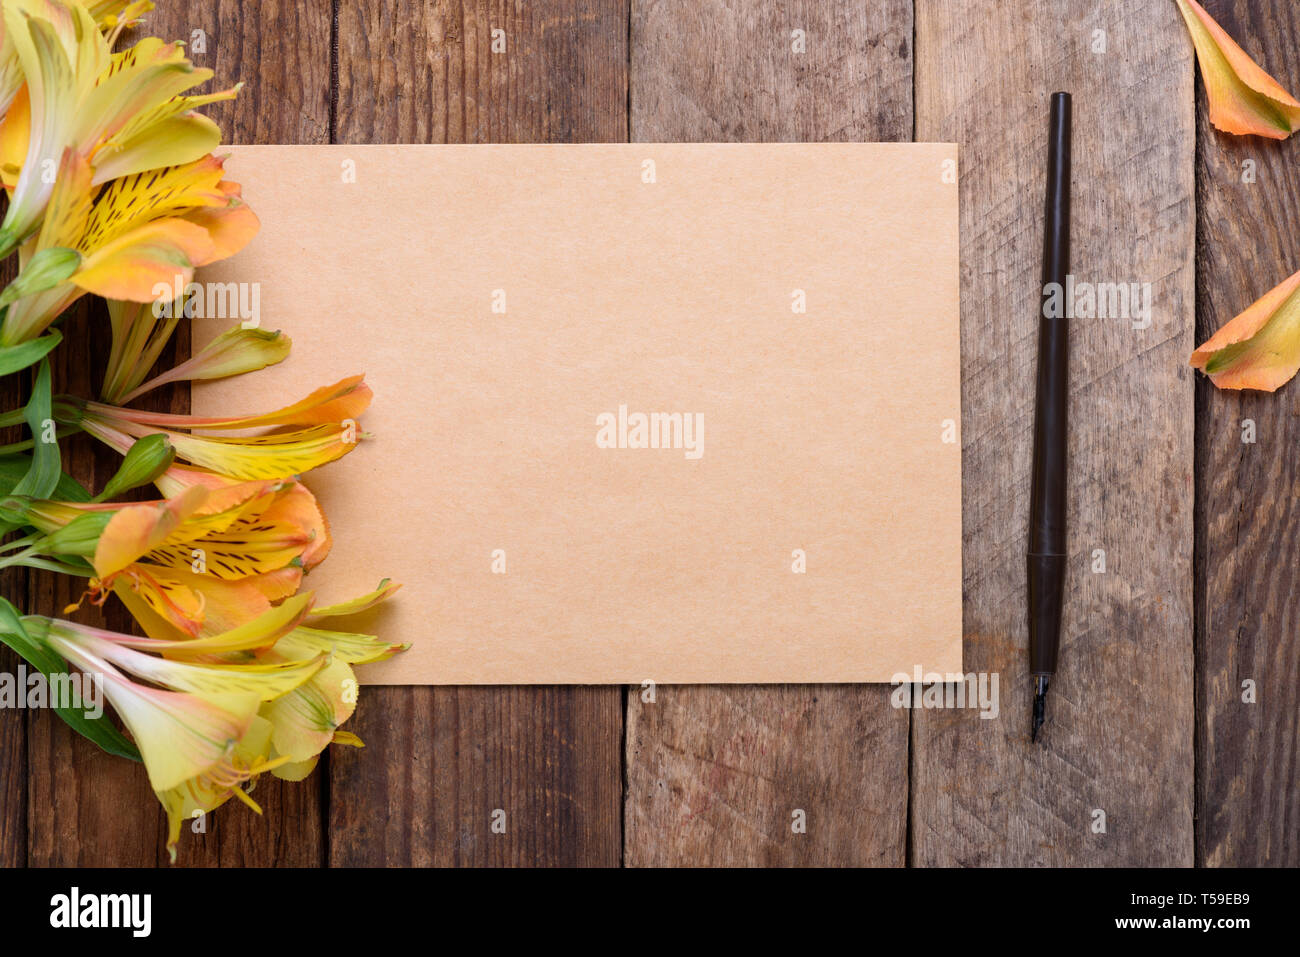 Blank Invitation Card With Flowers And Fountain Pen On Old